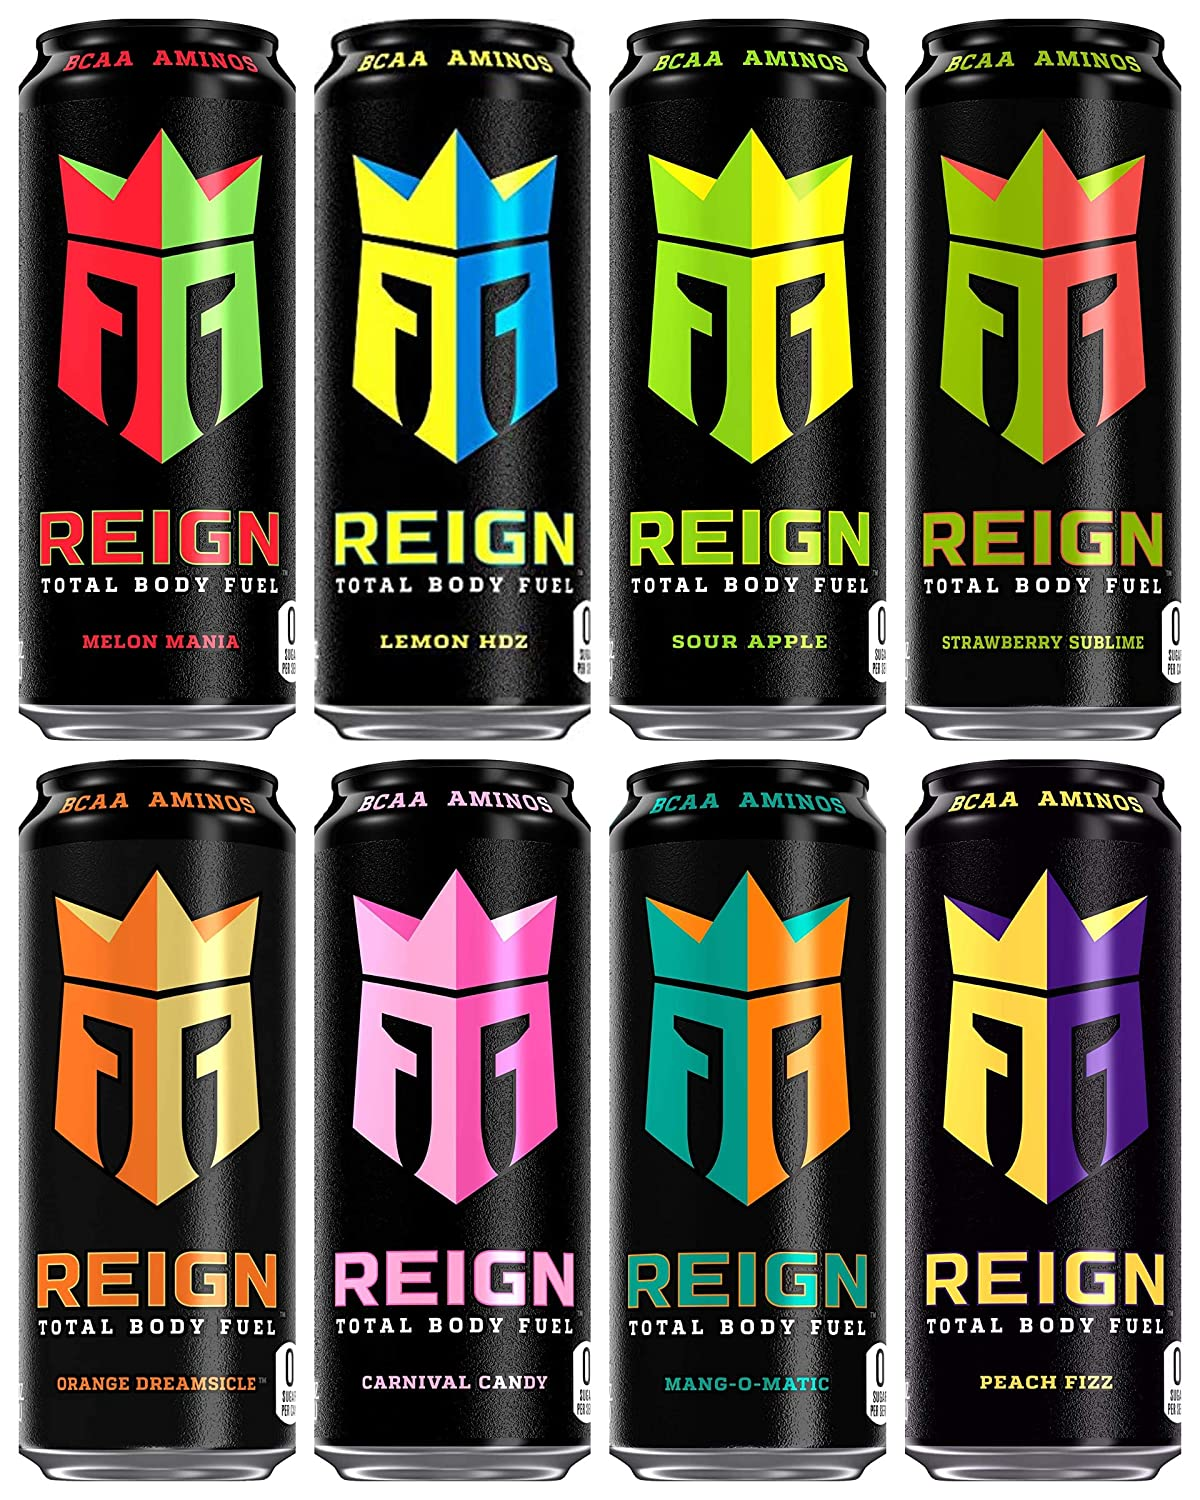 Amazon.com : Reign Total Body Fuel, 8 Flavor Variety Pack, Fitness & Performance Drink, 16oz (Pack of 8) : Grocery & Gourmet Food